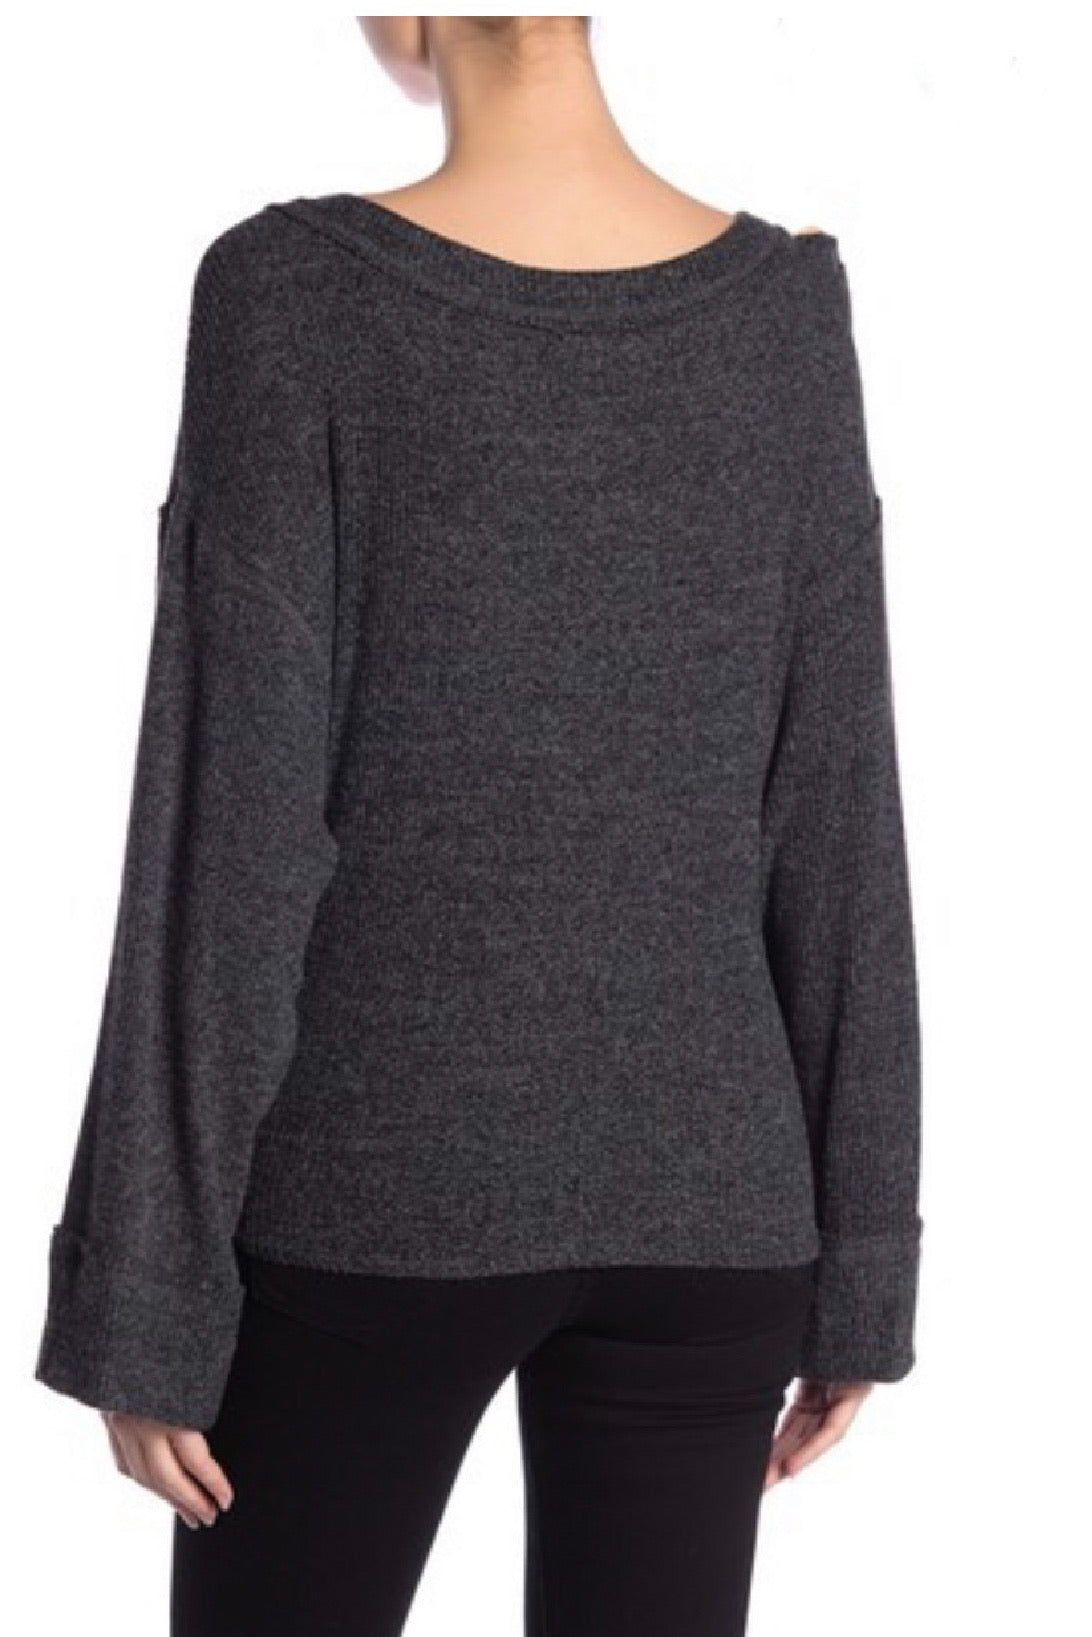 Knot Your Girlfriend Charcoal Knit Top